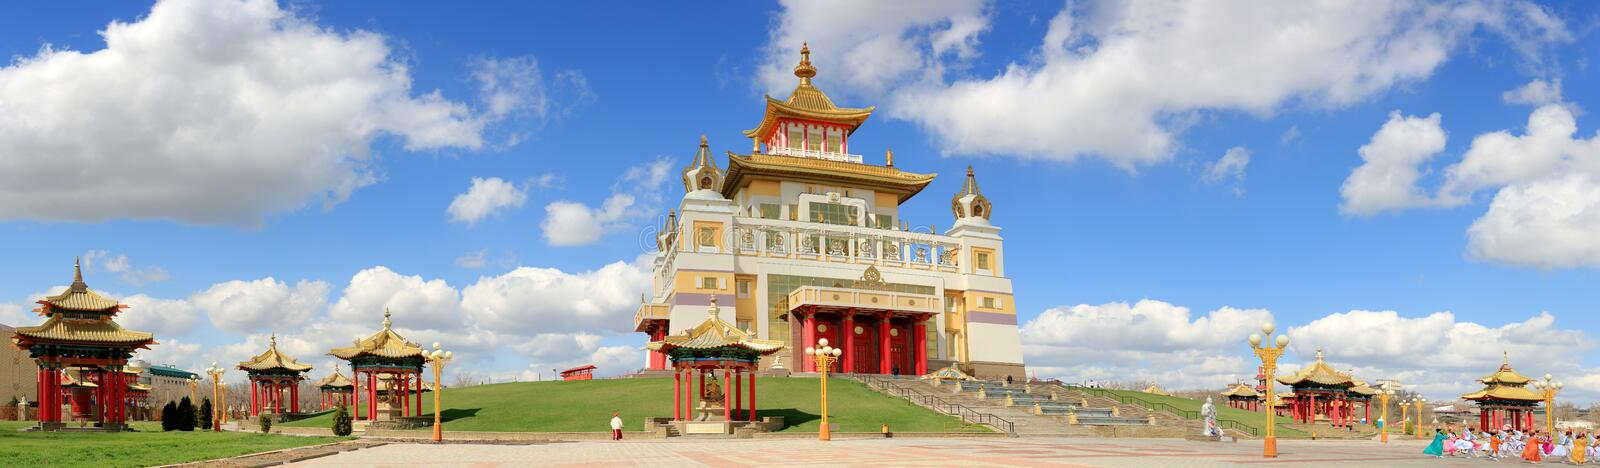 Clouds over the Buddhist temple. Golden Abode of Buddha Shakyamuni in Elista, Republic of Kalmykia, Russia on April 20, 2015. ELISTA, REPUBLIC OF KALMYKIA royalty free stock photos